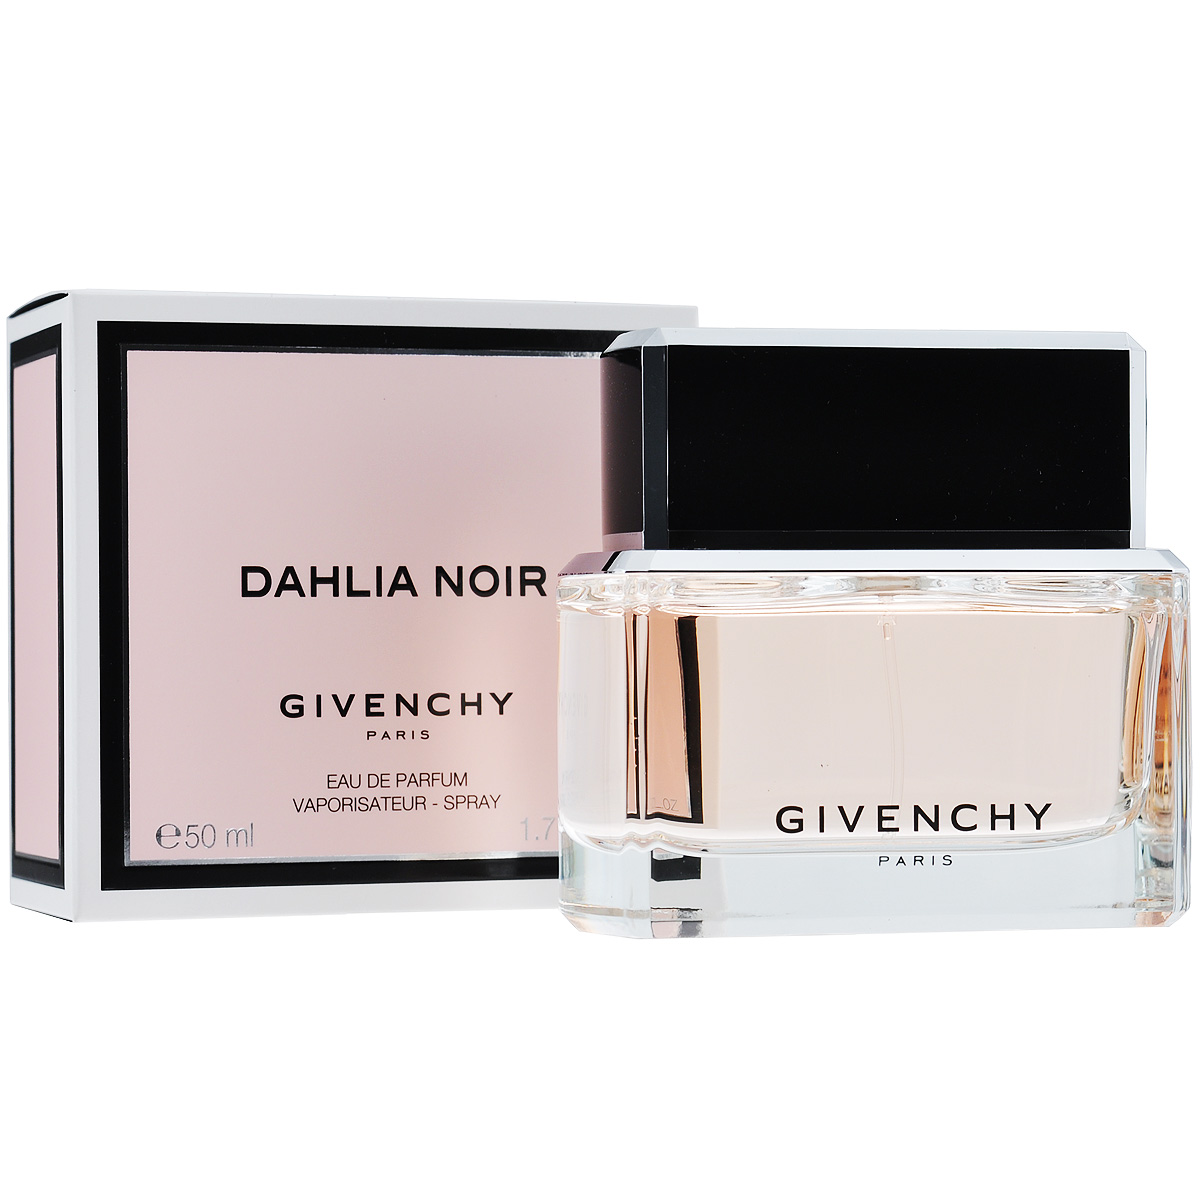 Givenchy Парфюмерная вода Dahlia Noir, женская, 50 мл givenchy hot couture парфюмерная вода 50 мл